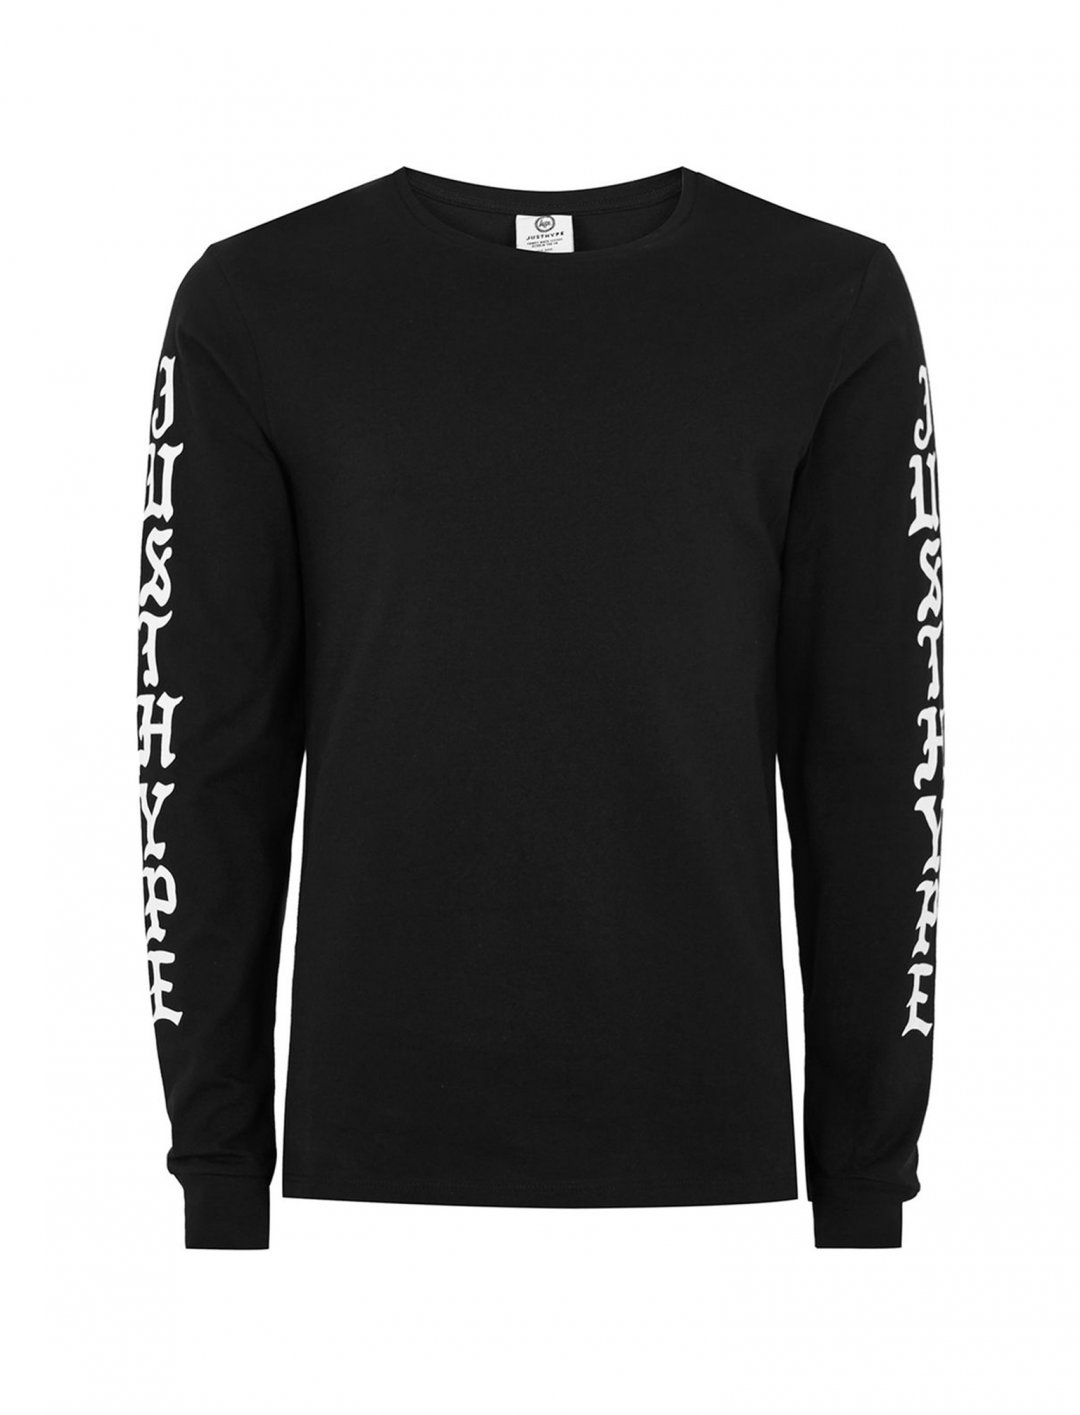 "'Old Text' T-Shirt {""id"":5,""product_section_id"":1,""name"":""Clothing"",""order"":5} Hype"